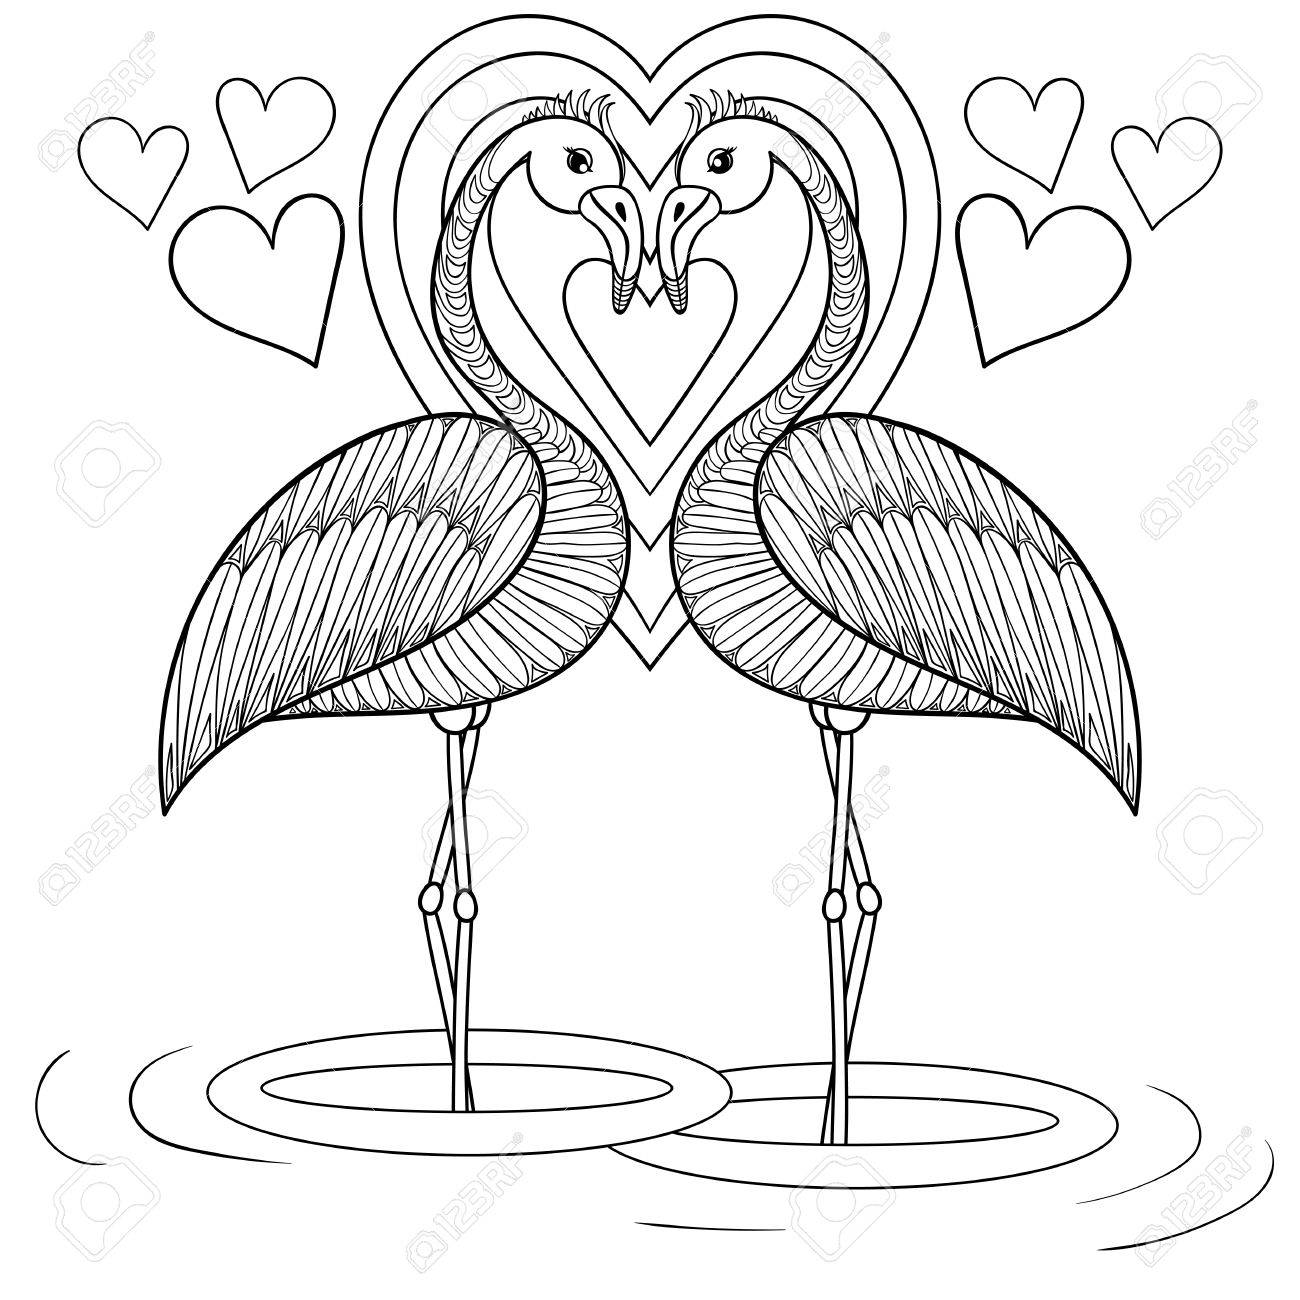 1300x1300 Coloring Page With Flamingo In Love, Zentangle Hand Drawing